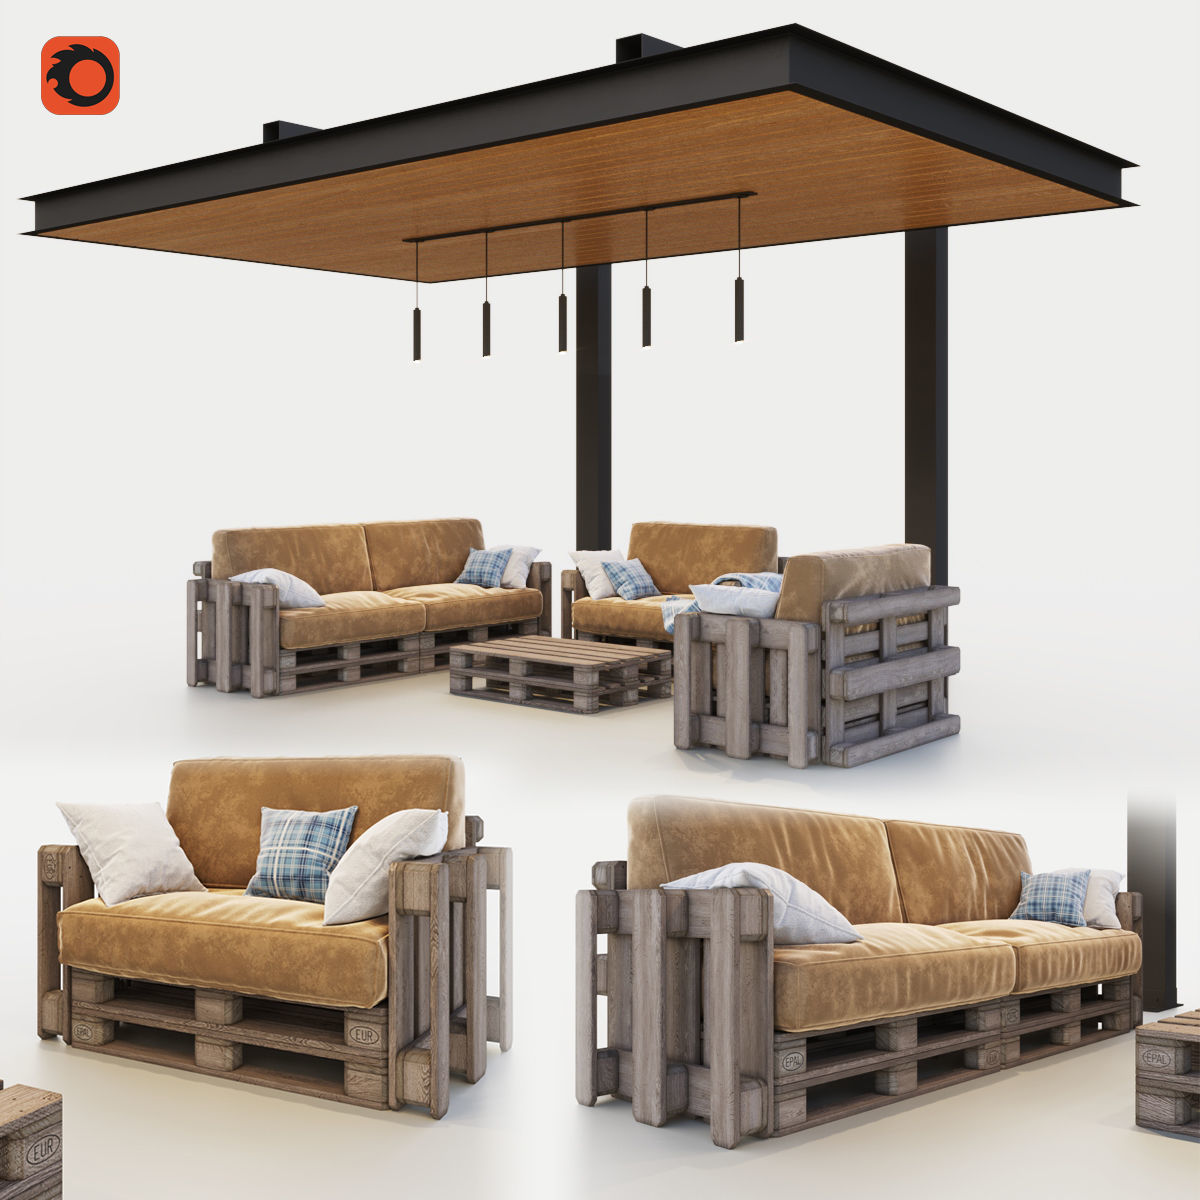 Canopy with pallets garden furniture